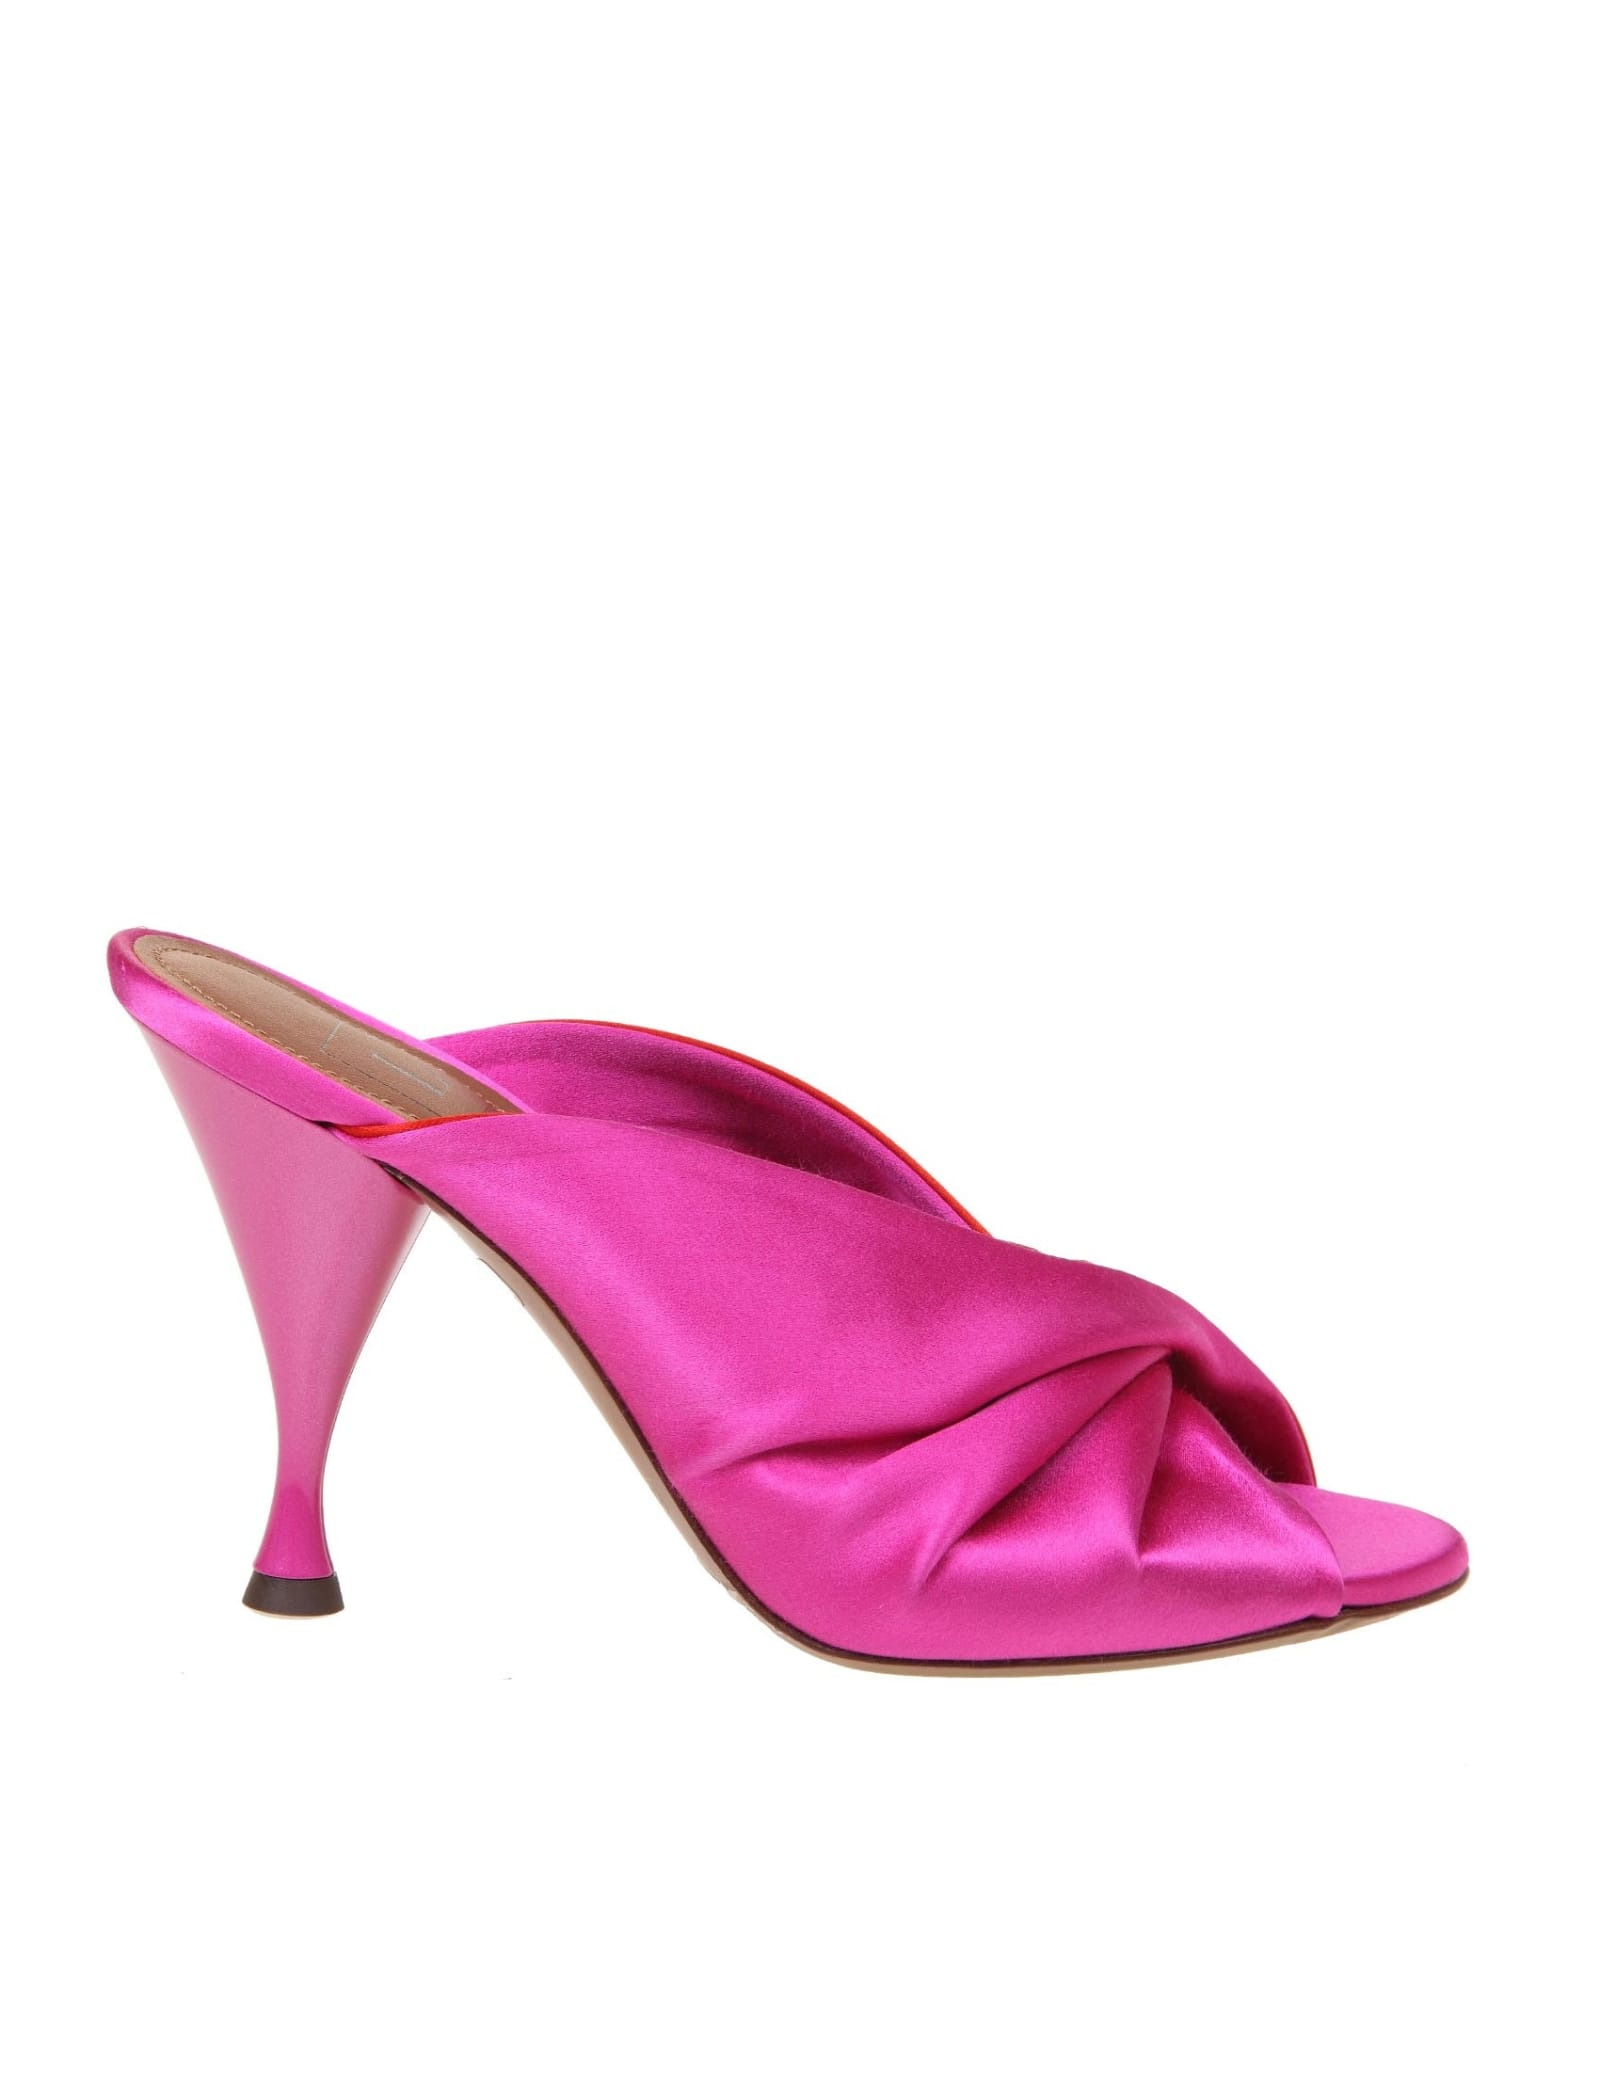 L'autre Chose MULES IN SATIN